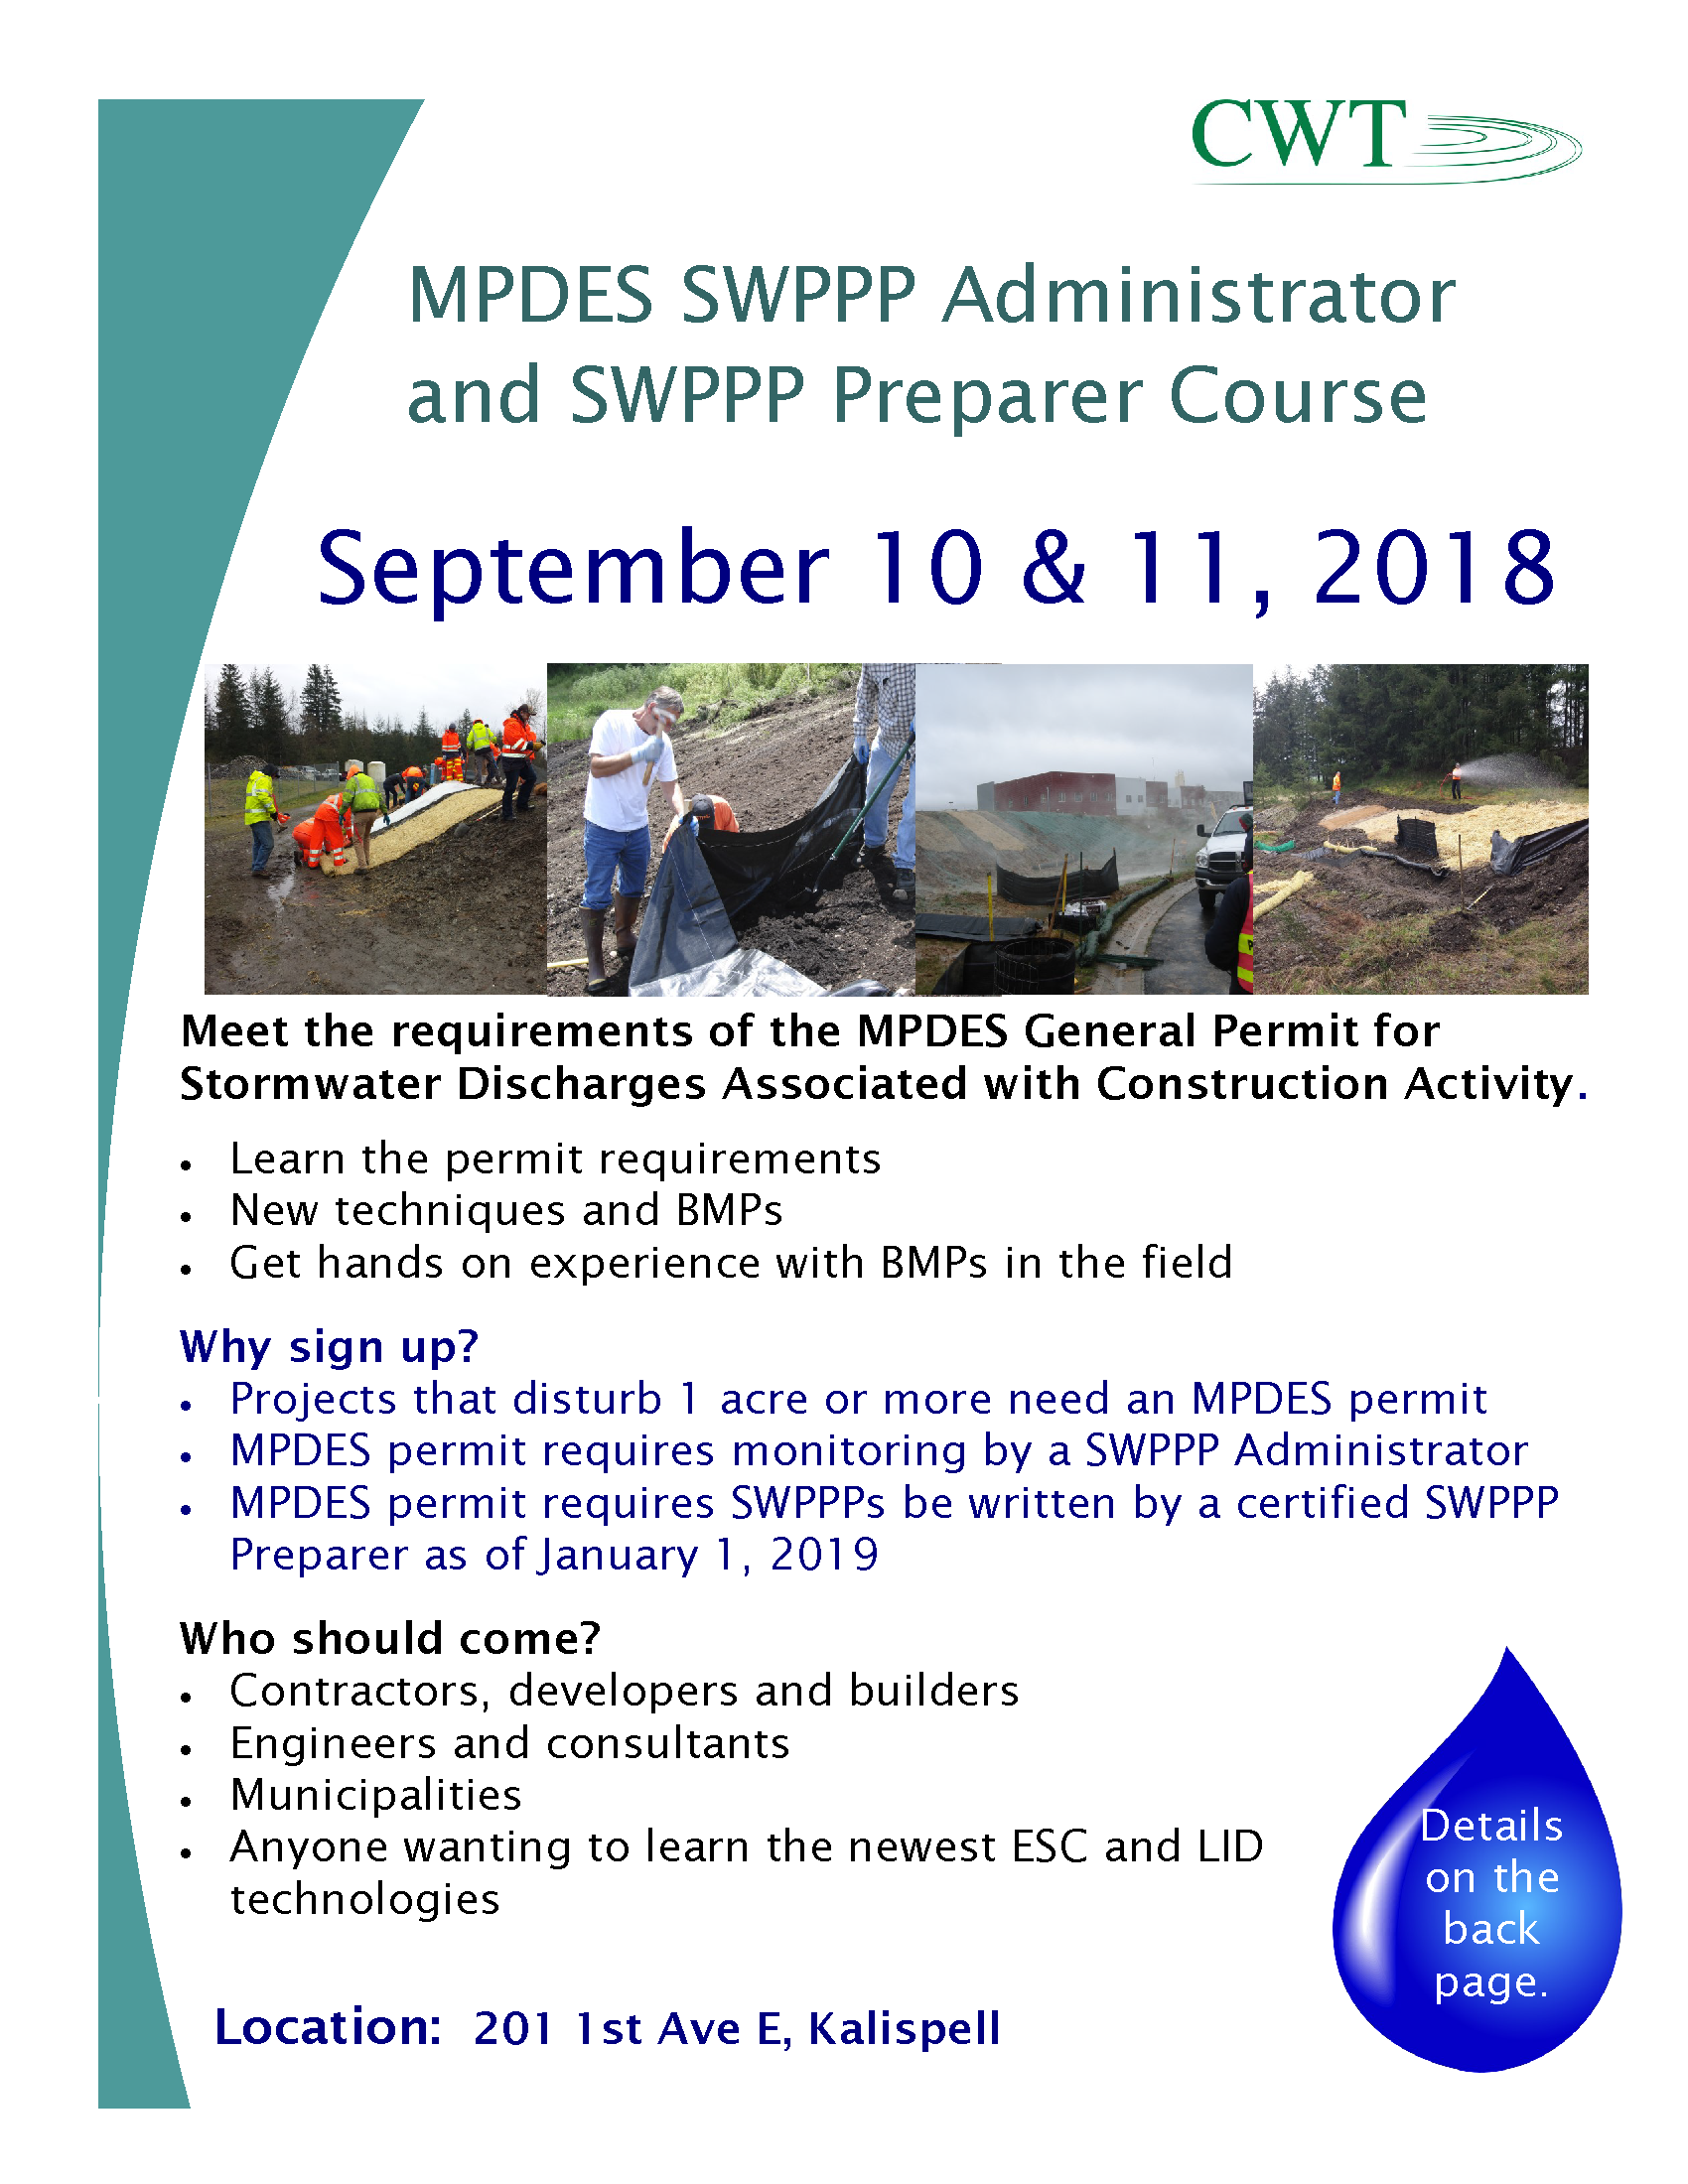 2018 SWPPP Administrator and Preparer Certification Class